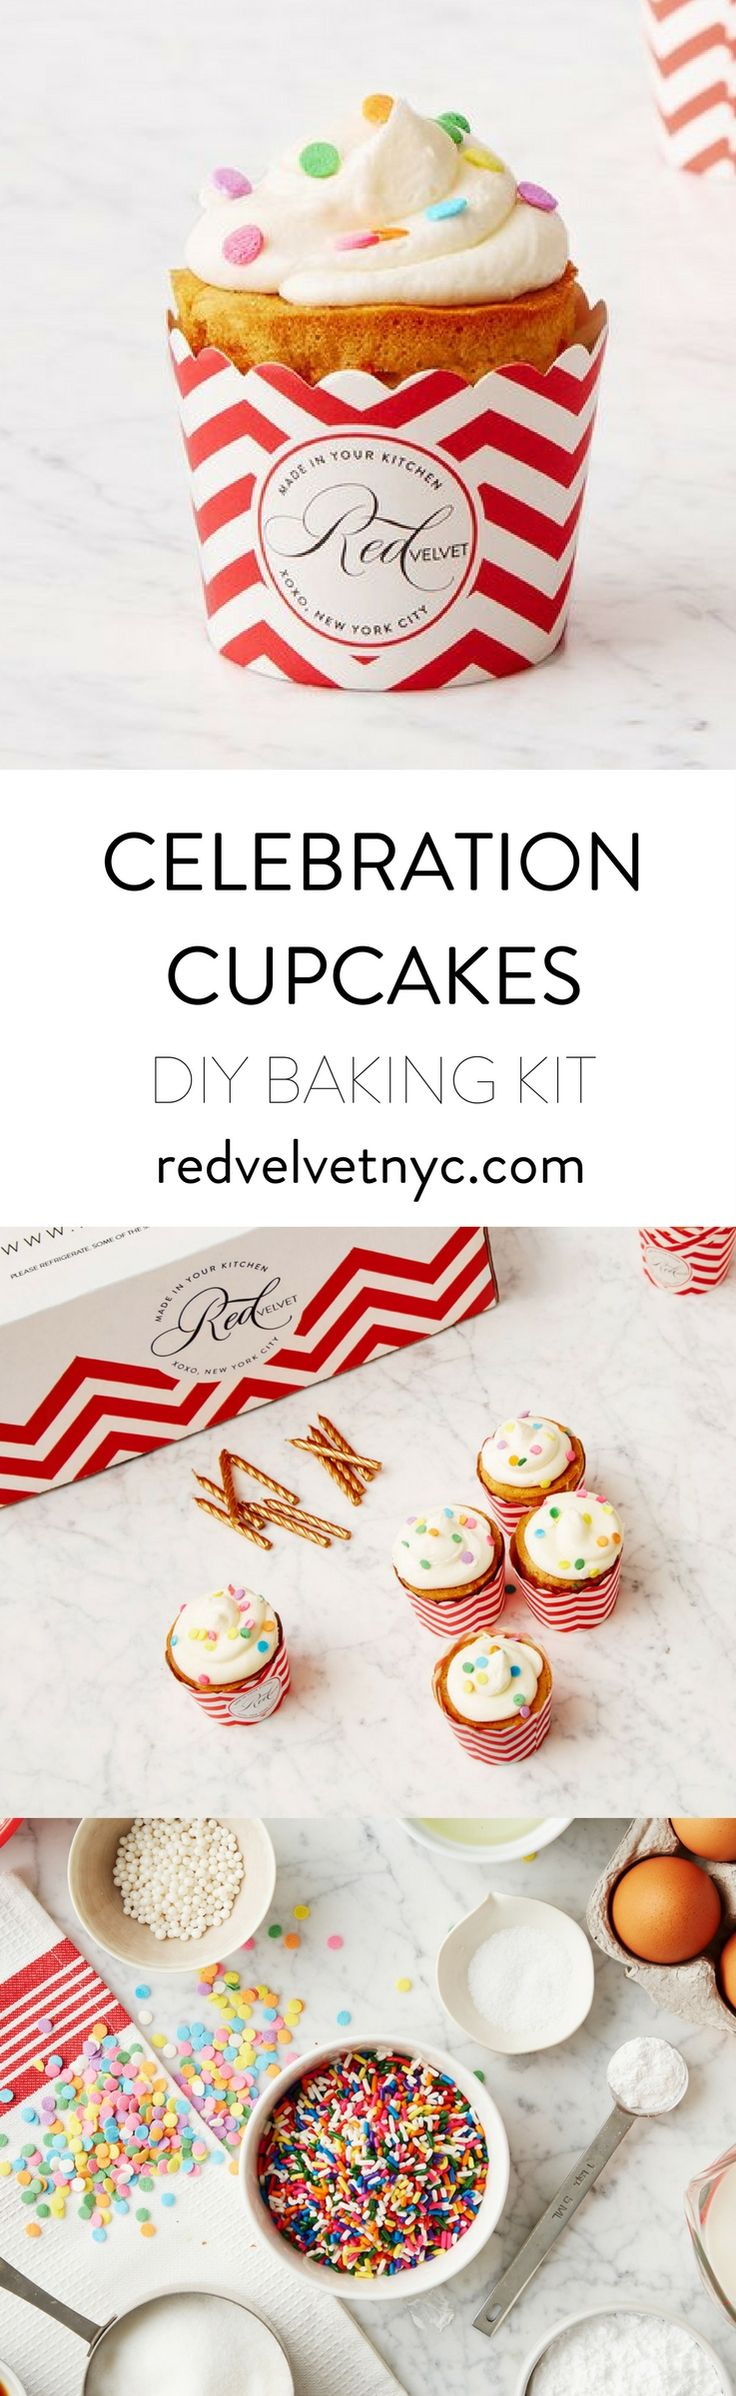 Bring out your inner child with these celebratory treats. Colorful cakes, pastel sprinkles and gold candles scream YAY. Includes 24 oven-safe red and white chevron cupcake cups, and 10 gold candles.